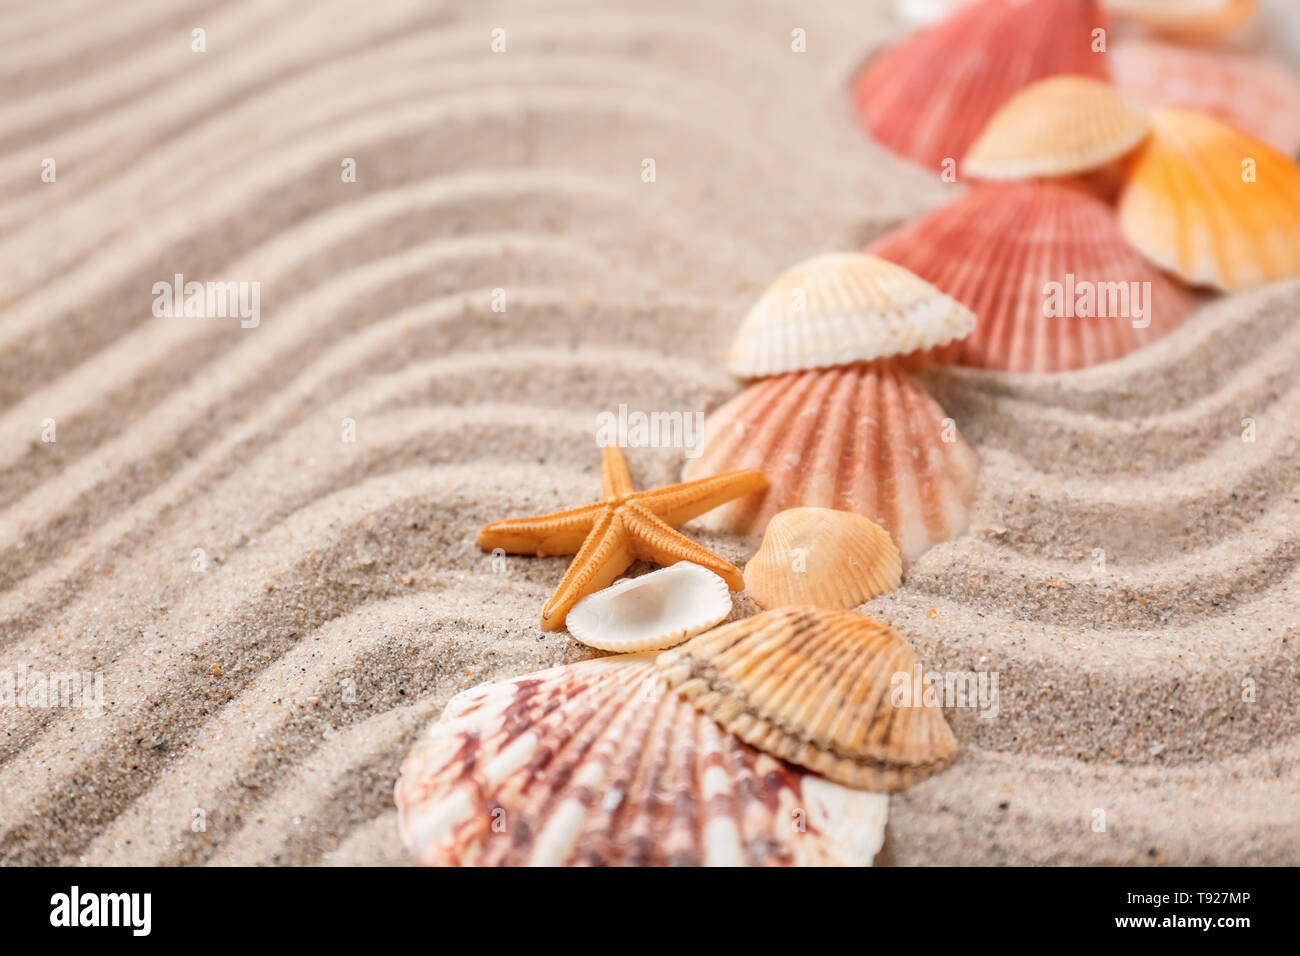 Different sea shells on sand - Stock Image